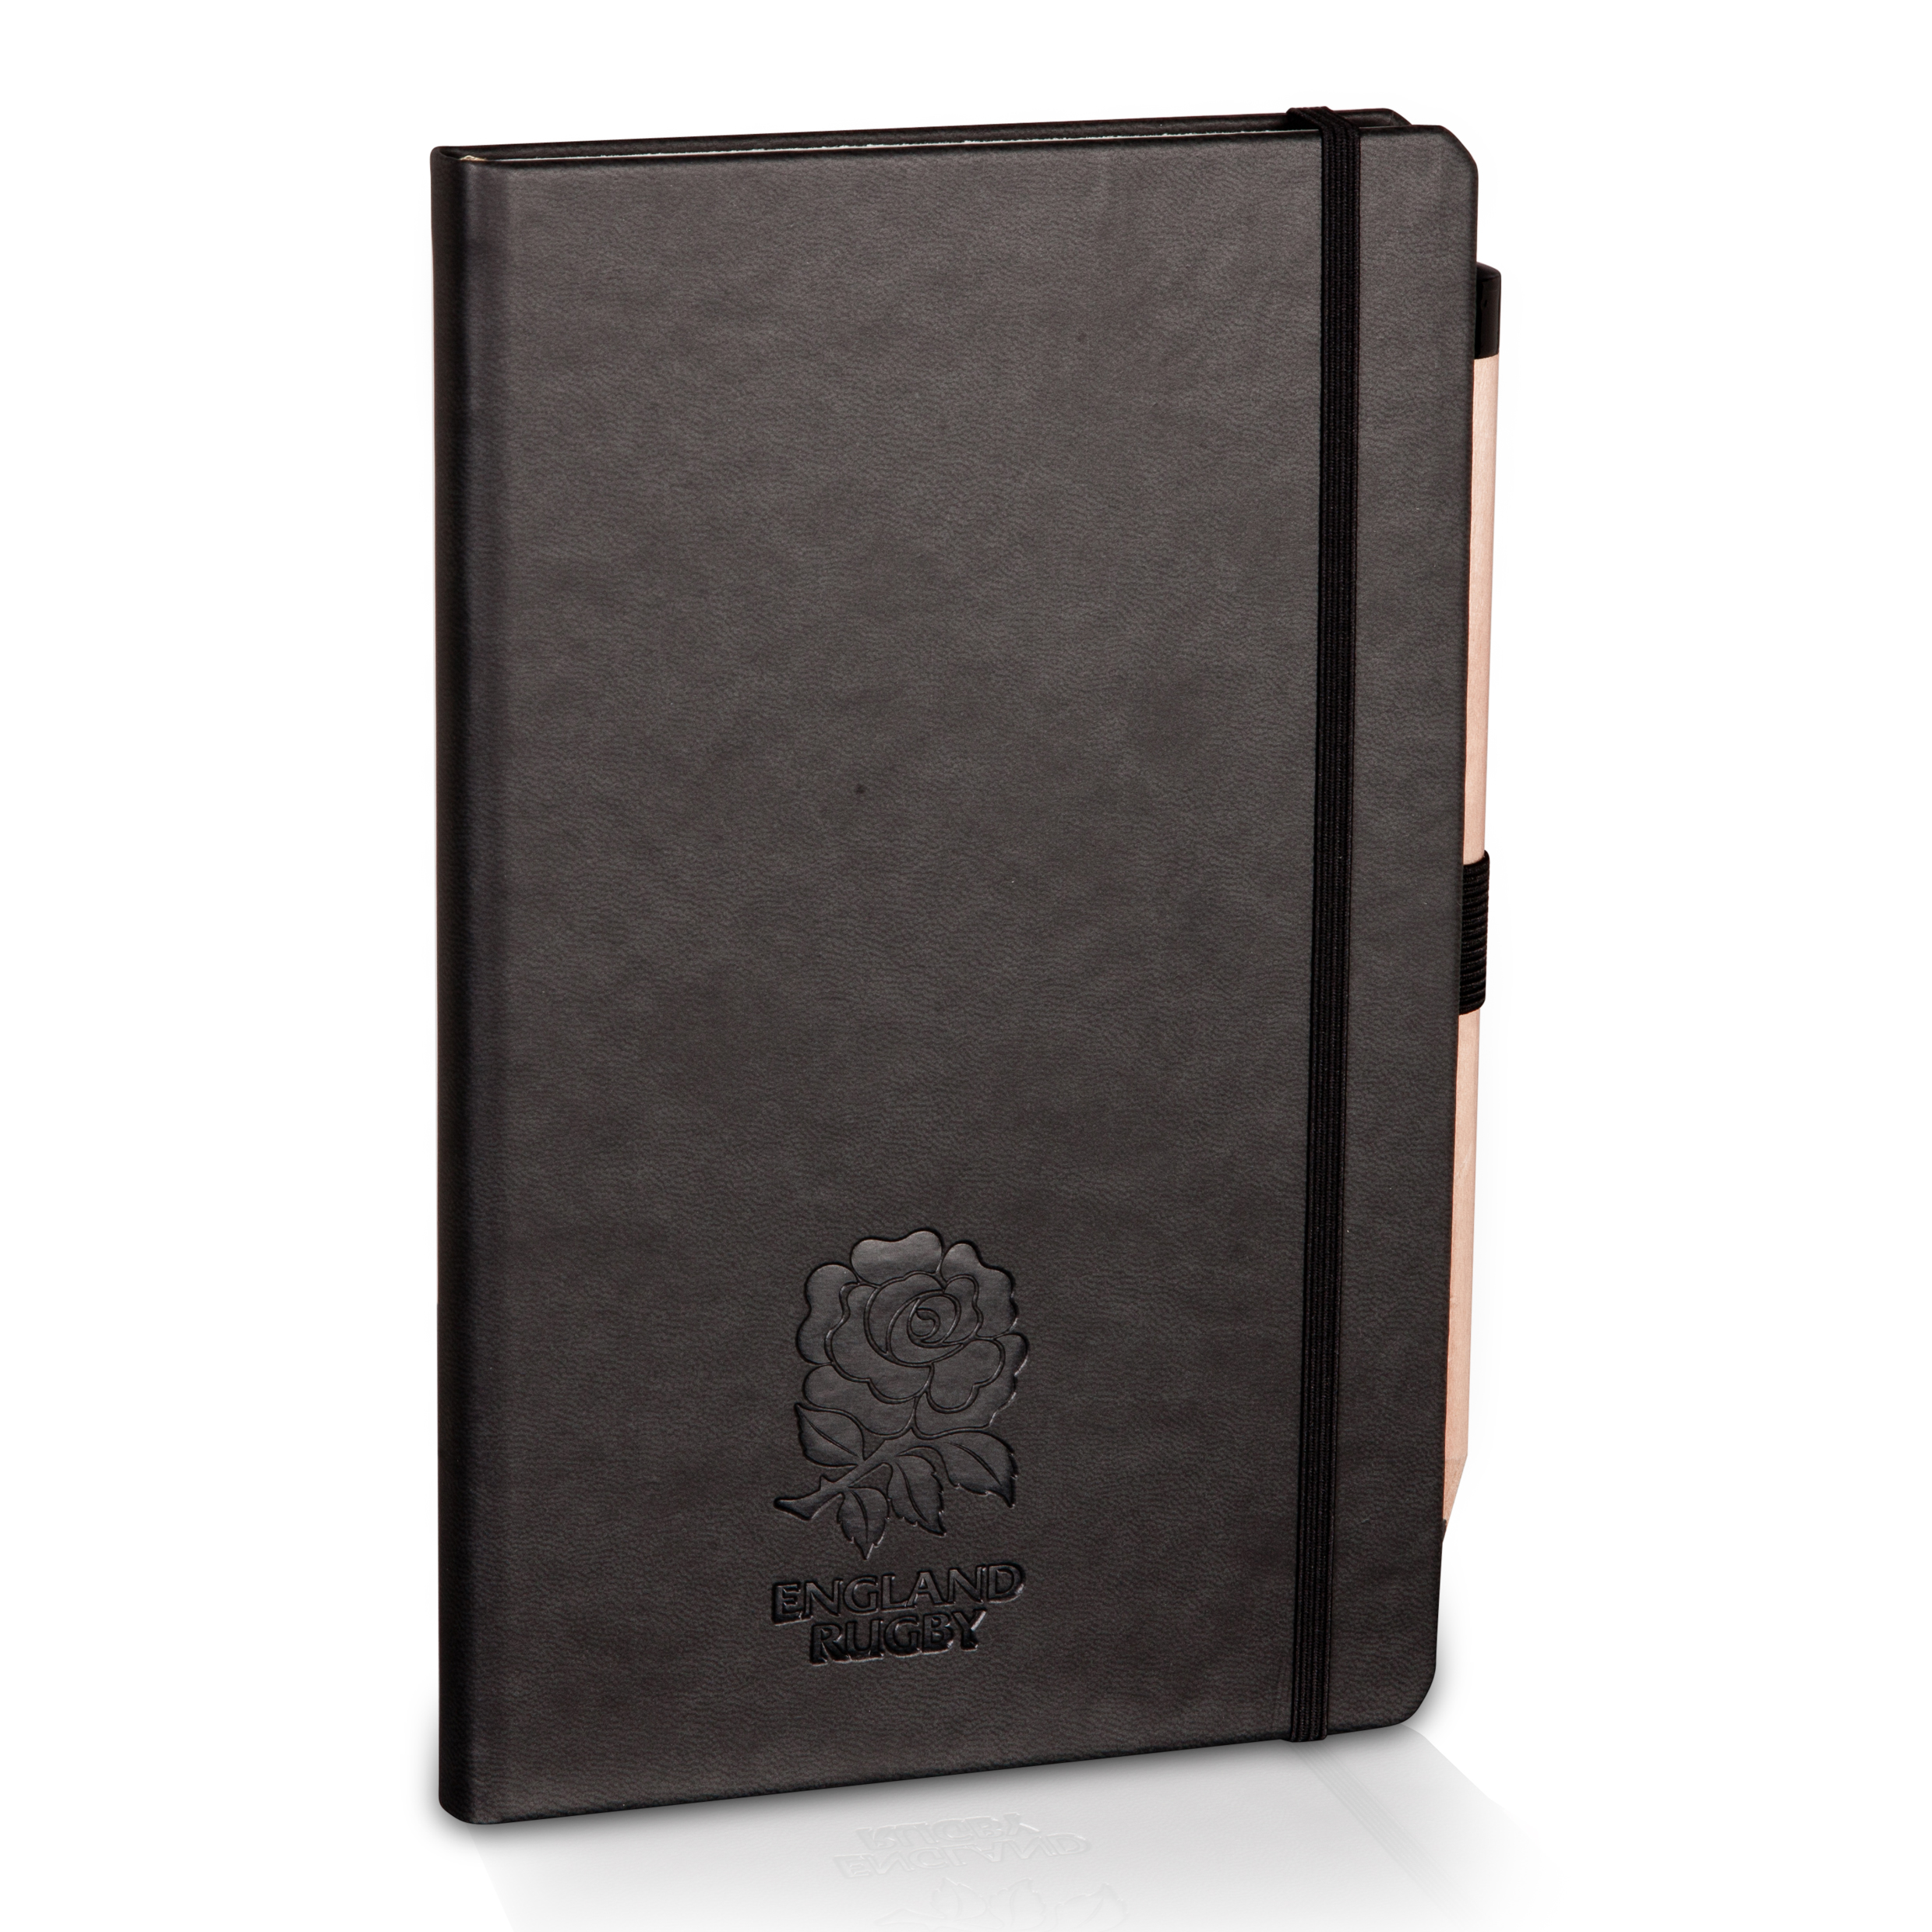 England Rugby Executive Notebook